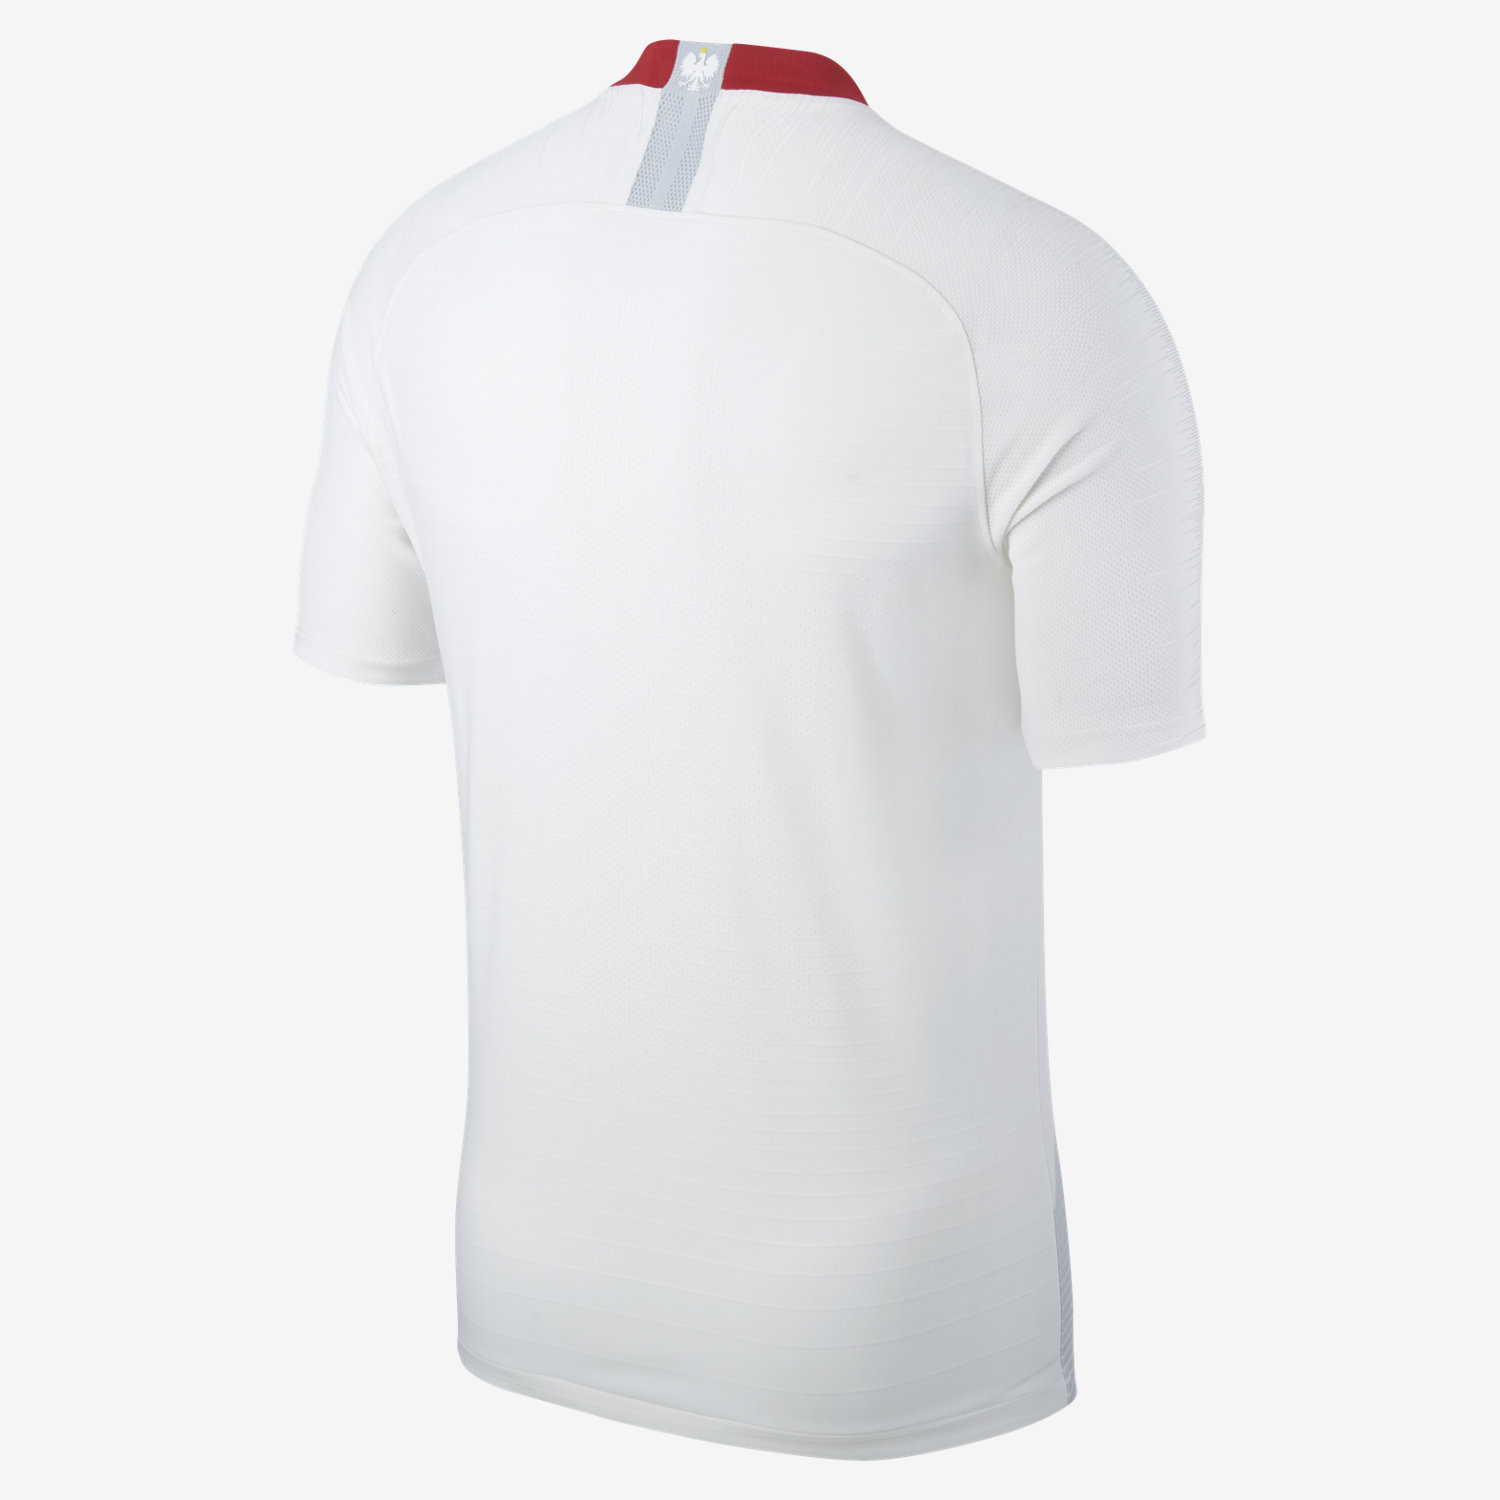 fdda811bbff 2018 Poland Vapor Match Home Men s Football Shirt. Nike.com UK